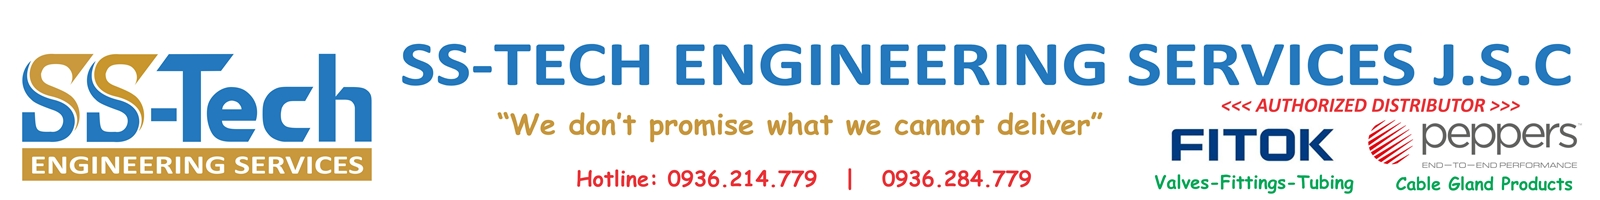 SS-Tech Engineering Services JSC